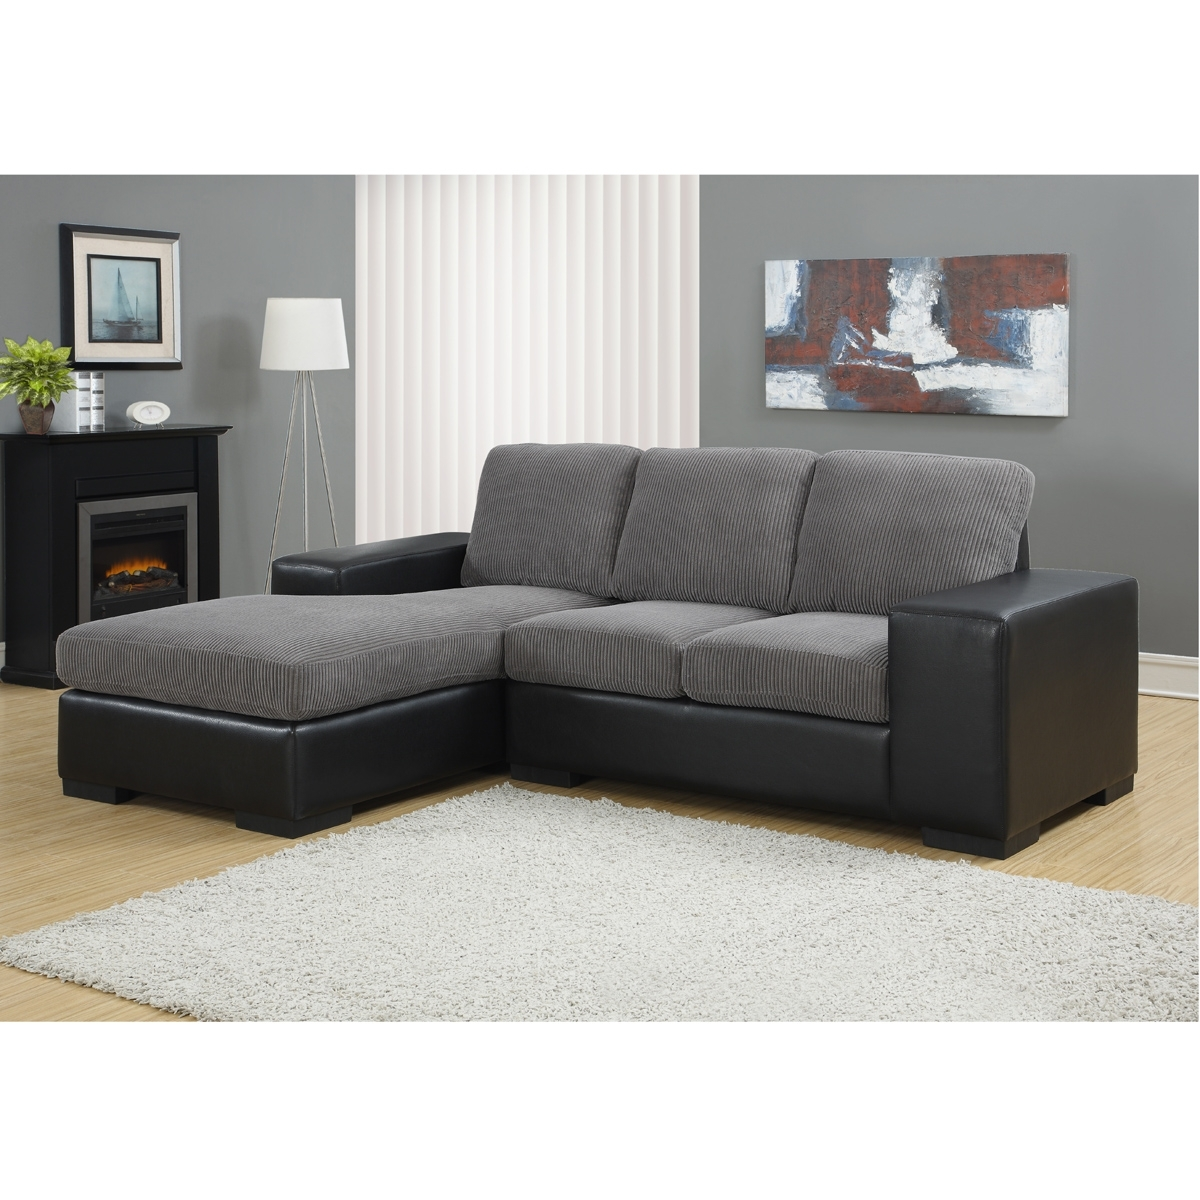 Sectional Sofas For Condos Regarding Preferred Jacob Corduroy Sofa In Grey & Black (View 2 of 15)